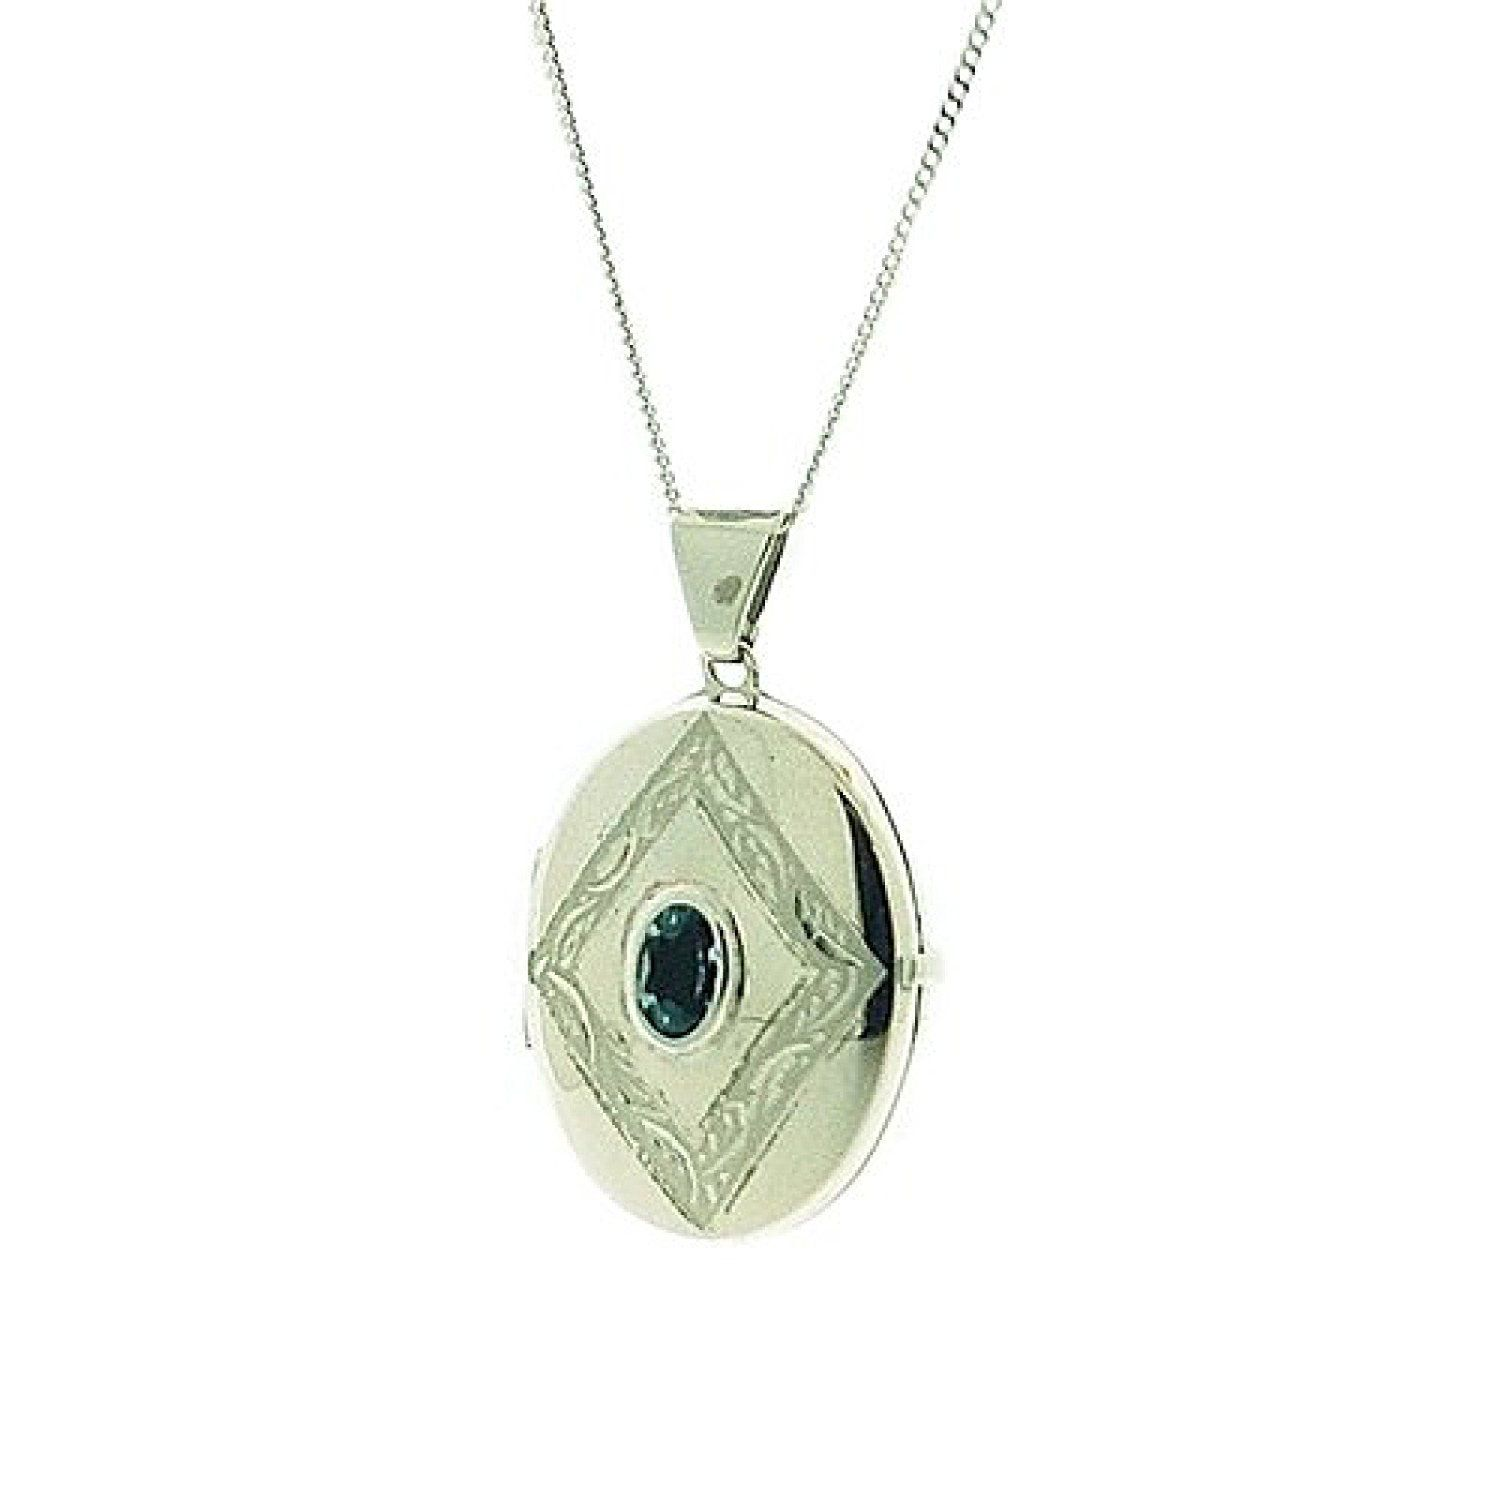 TOC Sterling Silver Butterfly Engraved Round Locket Necklace18 Un0HLiFR5D